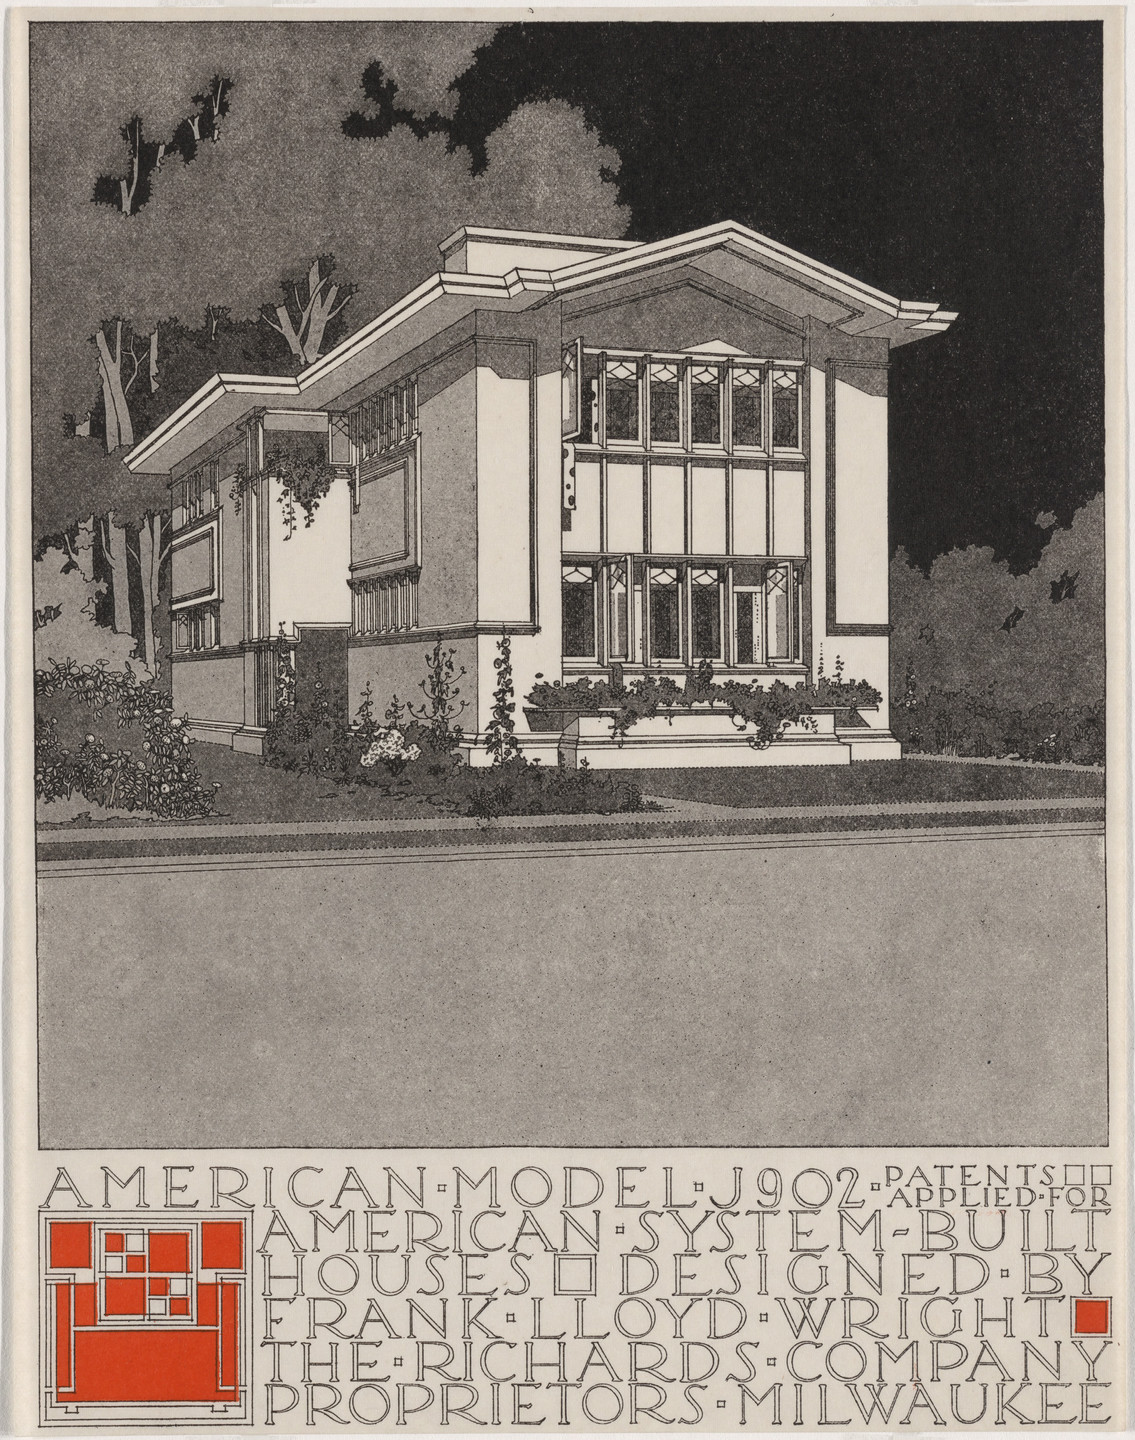 Frank Lloyd Wright. American System-Built Houses for The Richards Company, project, Milwaukee, Wisconsin, Perpsective of model J902. c. 1915-17